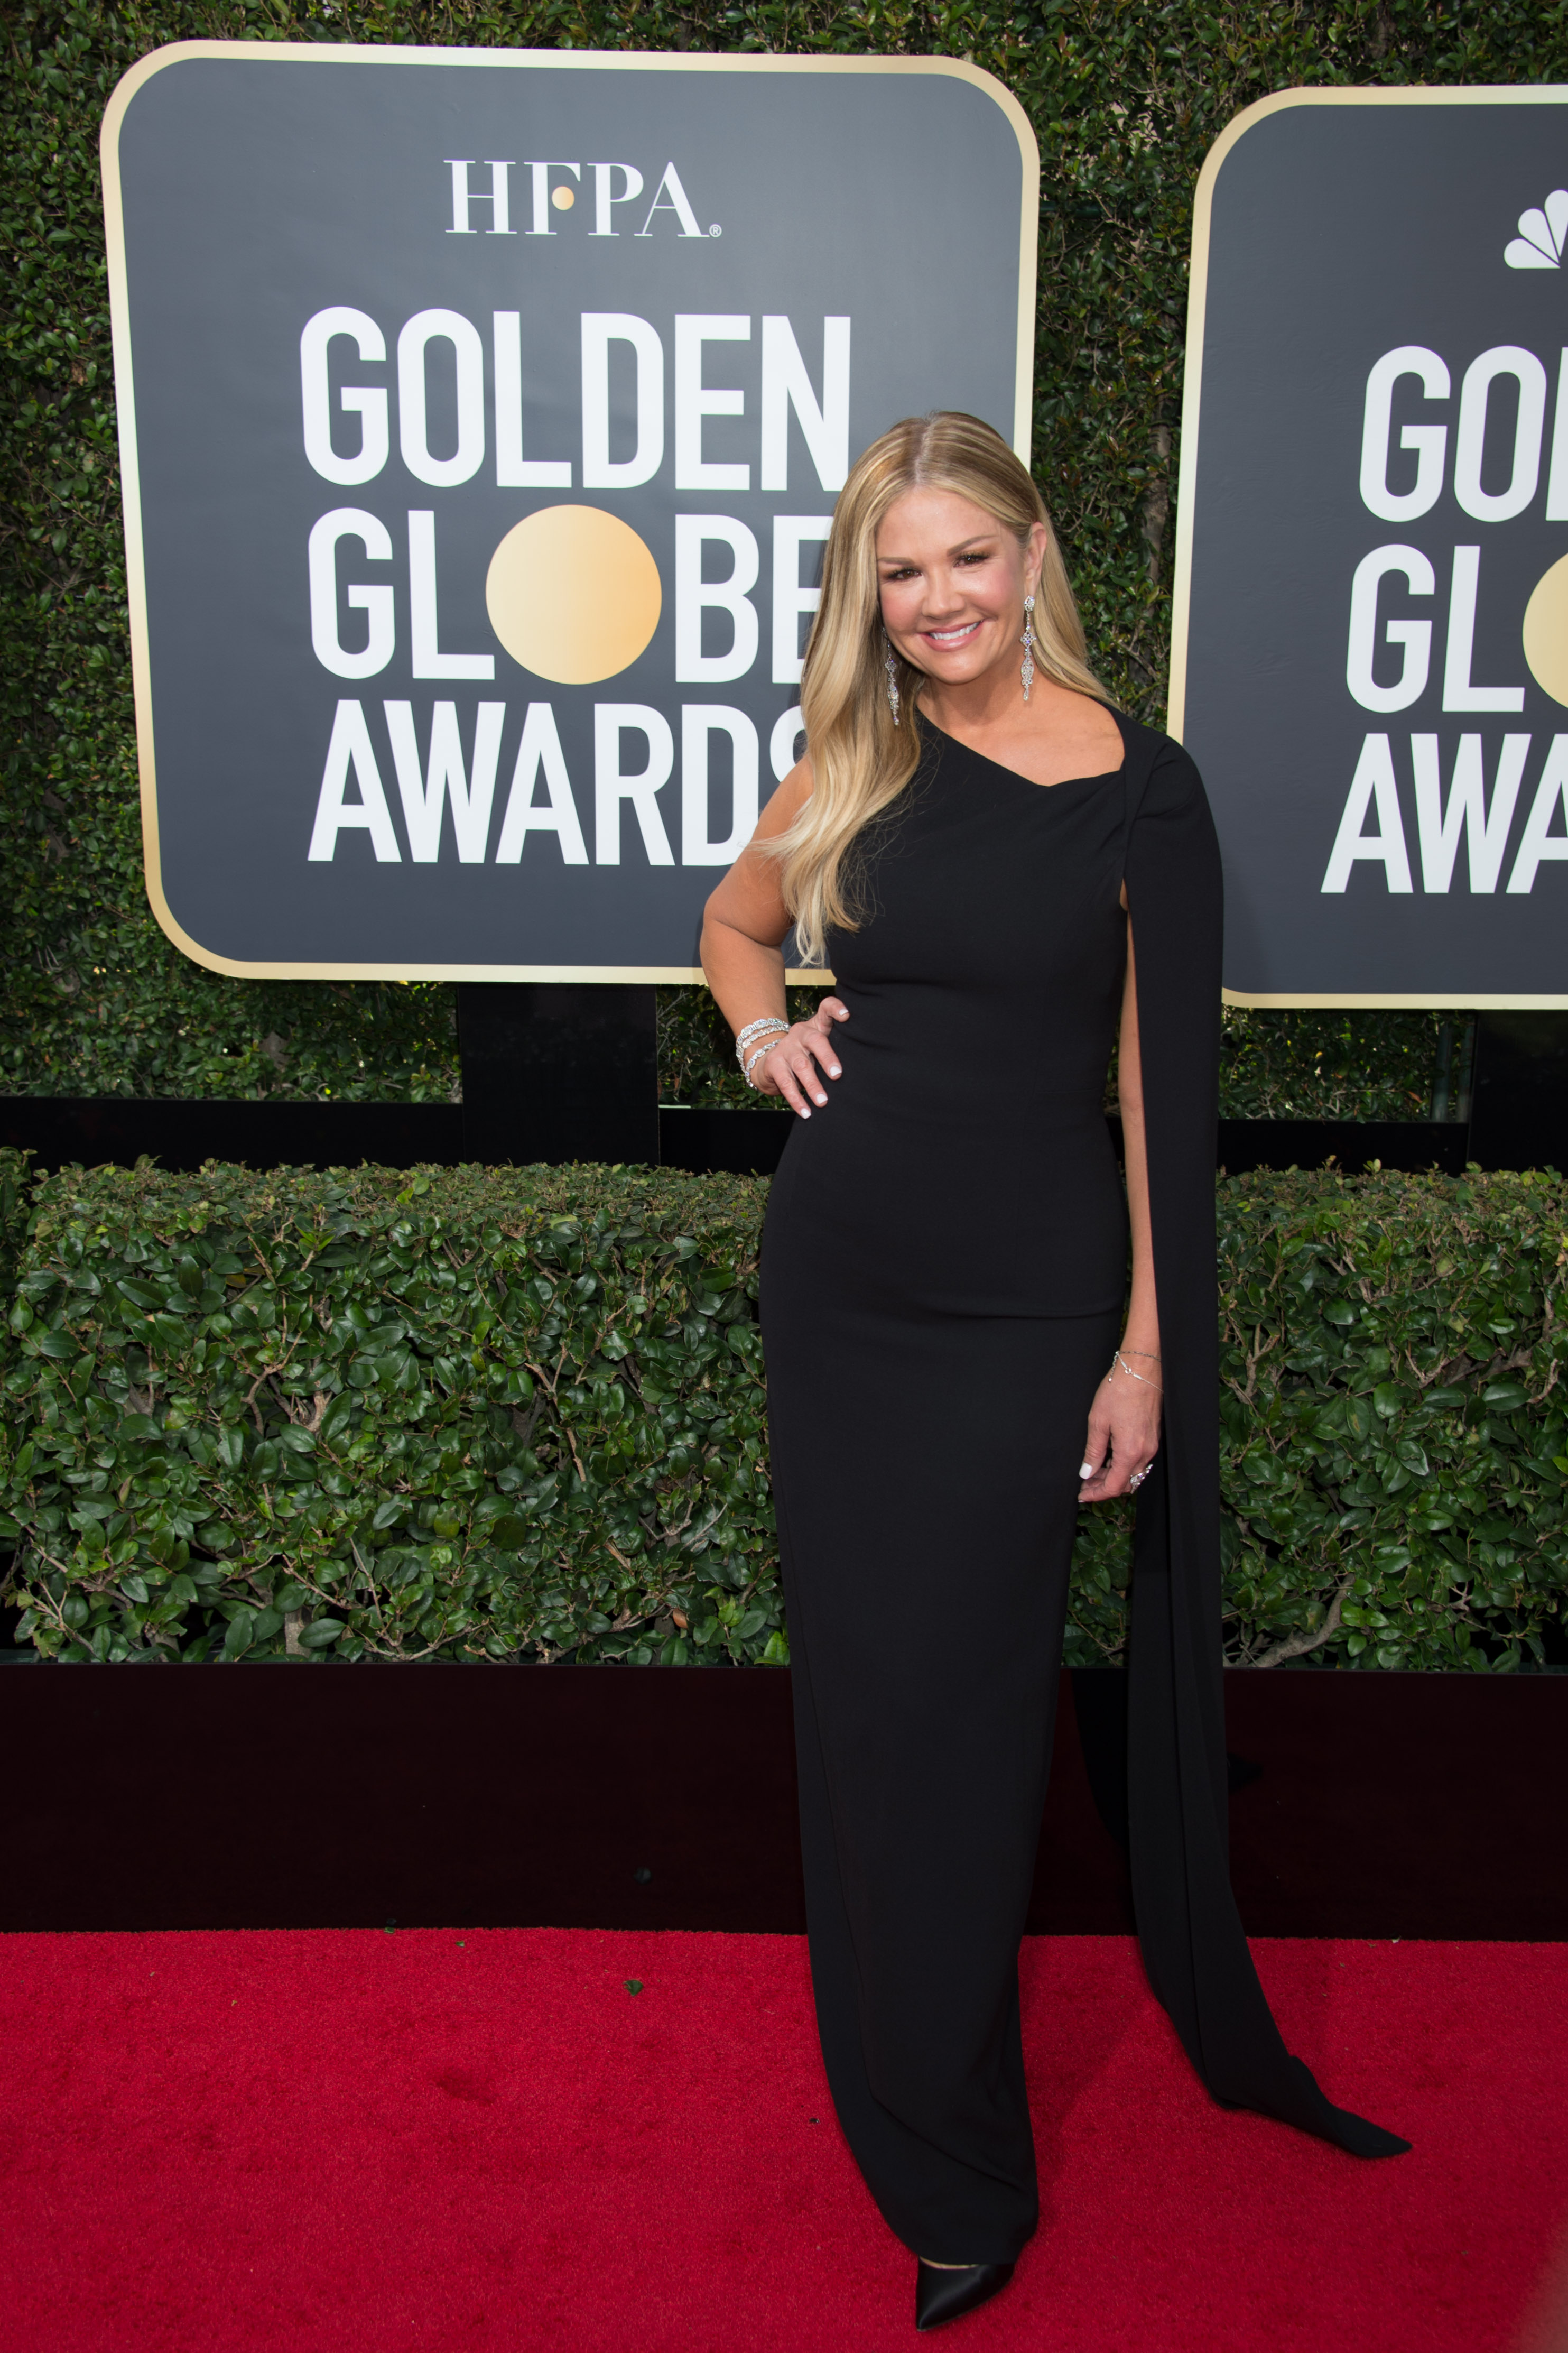 Nancy O'Dell arrives at the 75th Annual Golden Globe Awards at the Beverly Hilton in Beverly Hills, CA on Sunday, January 7, 2018.